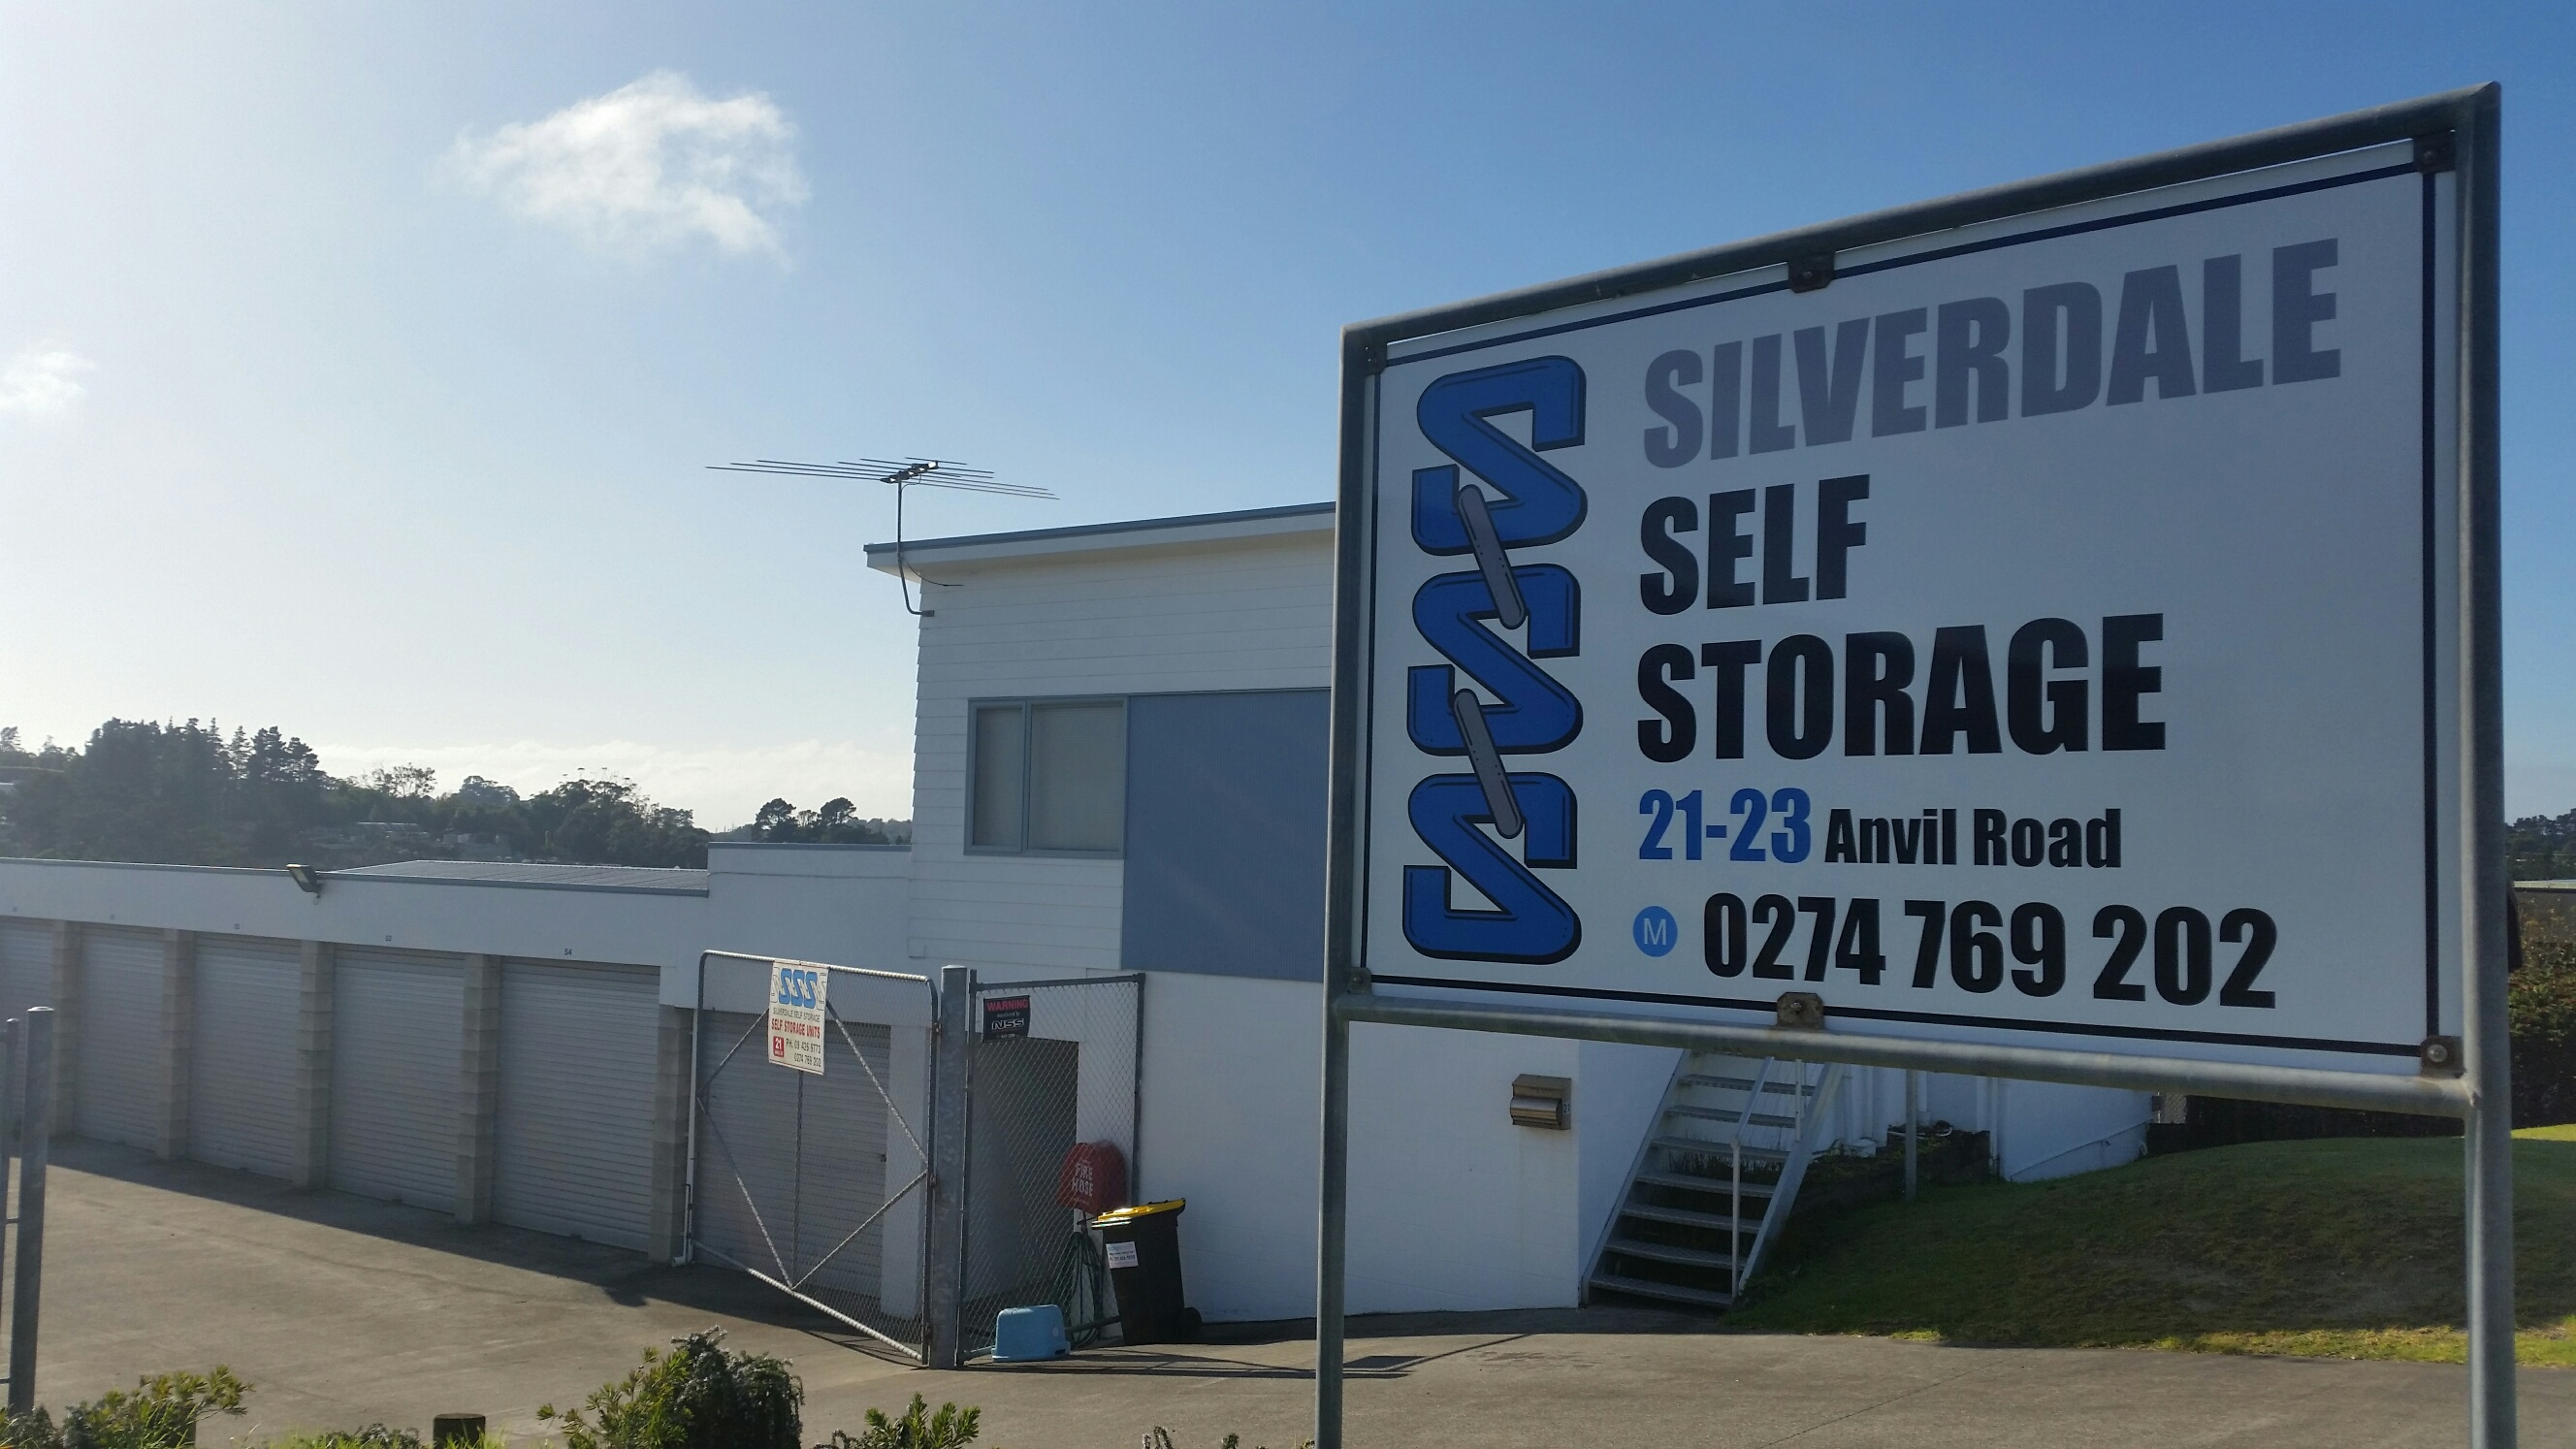 Silverdale Self Storage North S Hibiscus Coast And The Rodney District